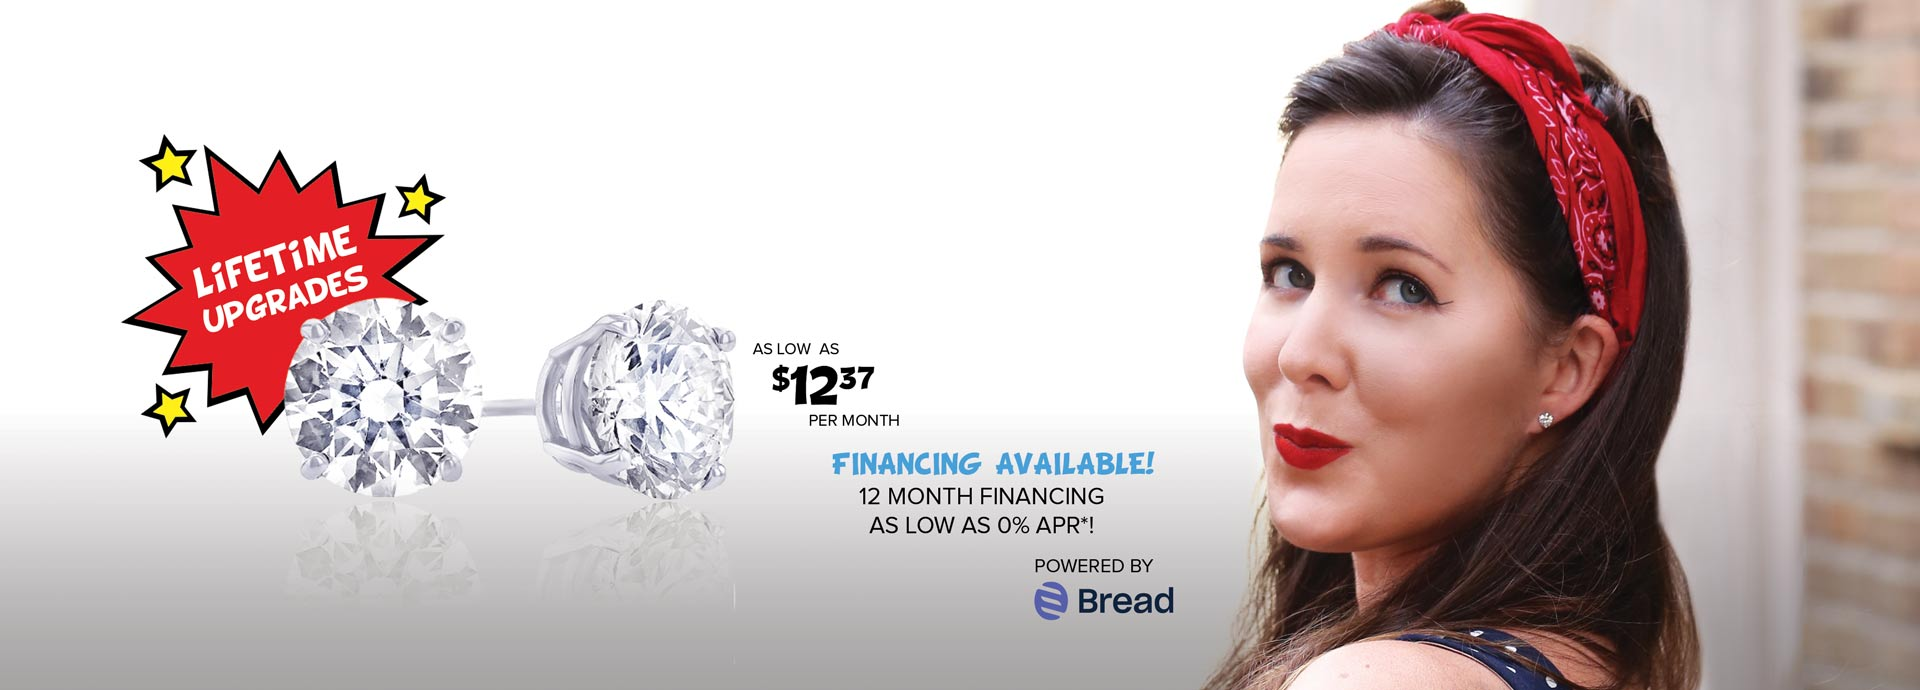 12 month interest free financing powered by Bread Financing